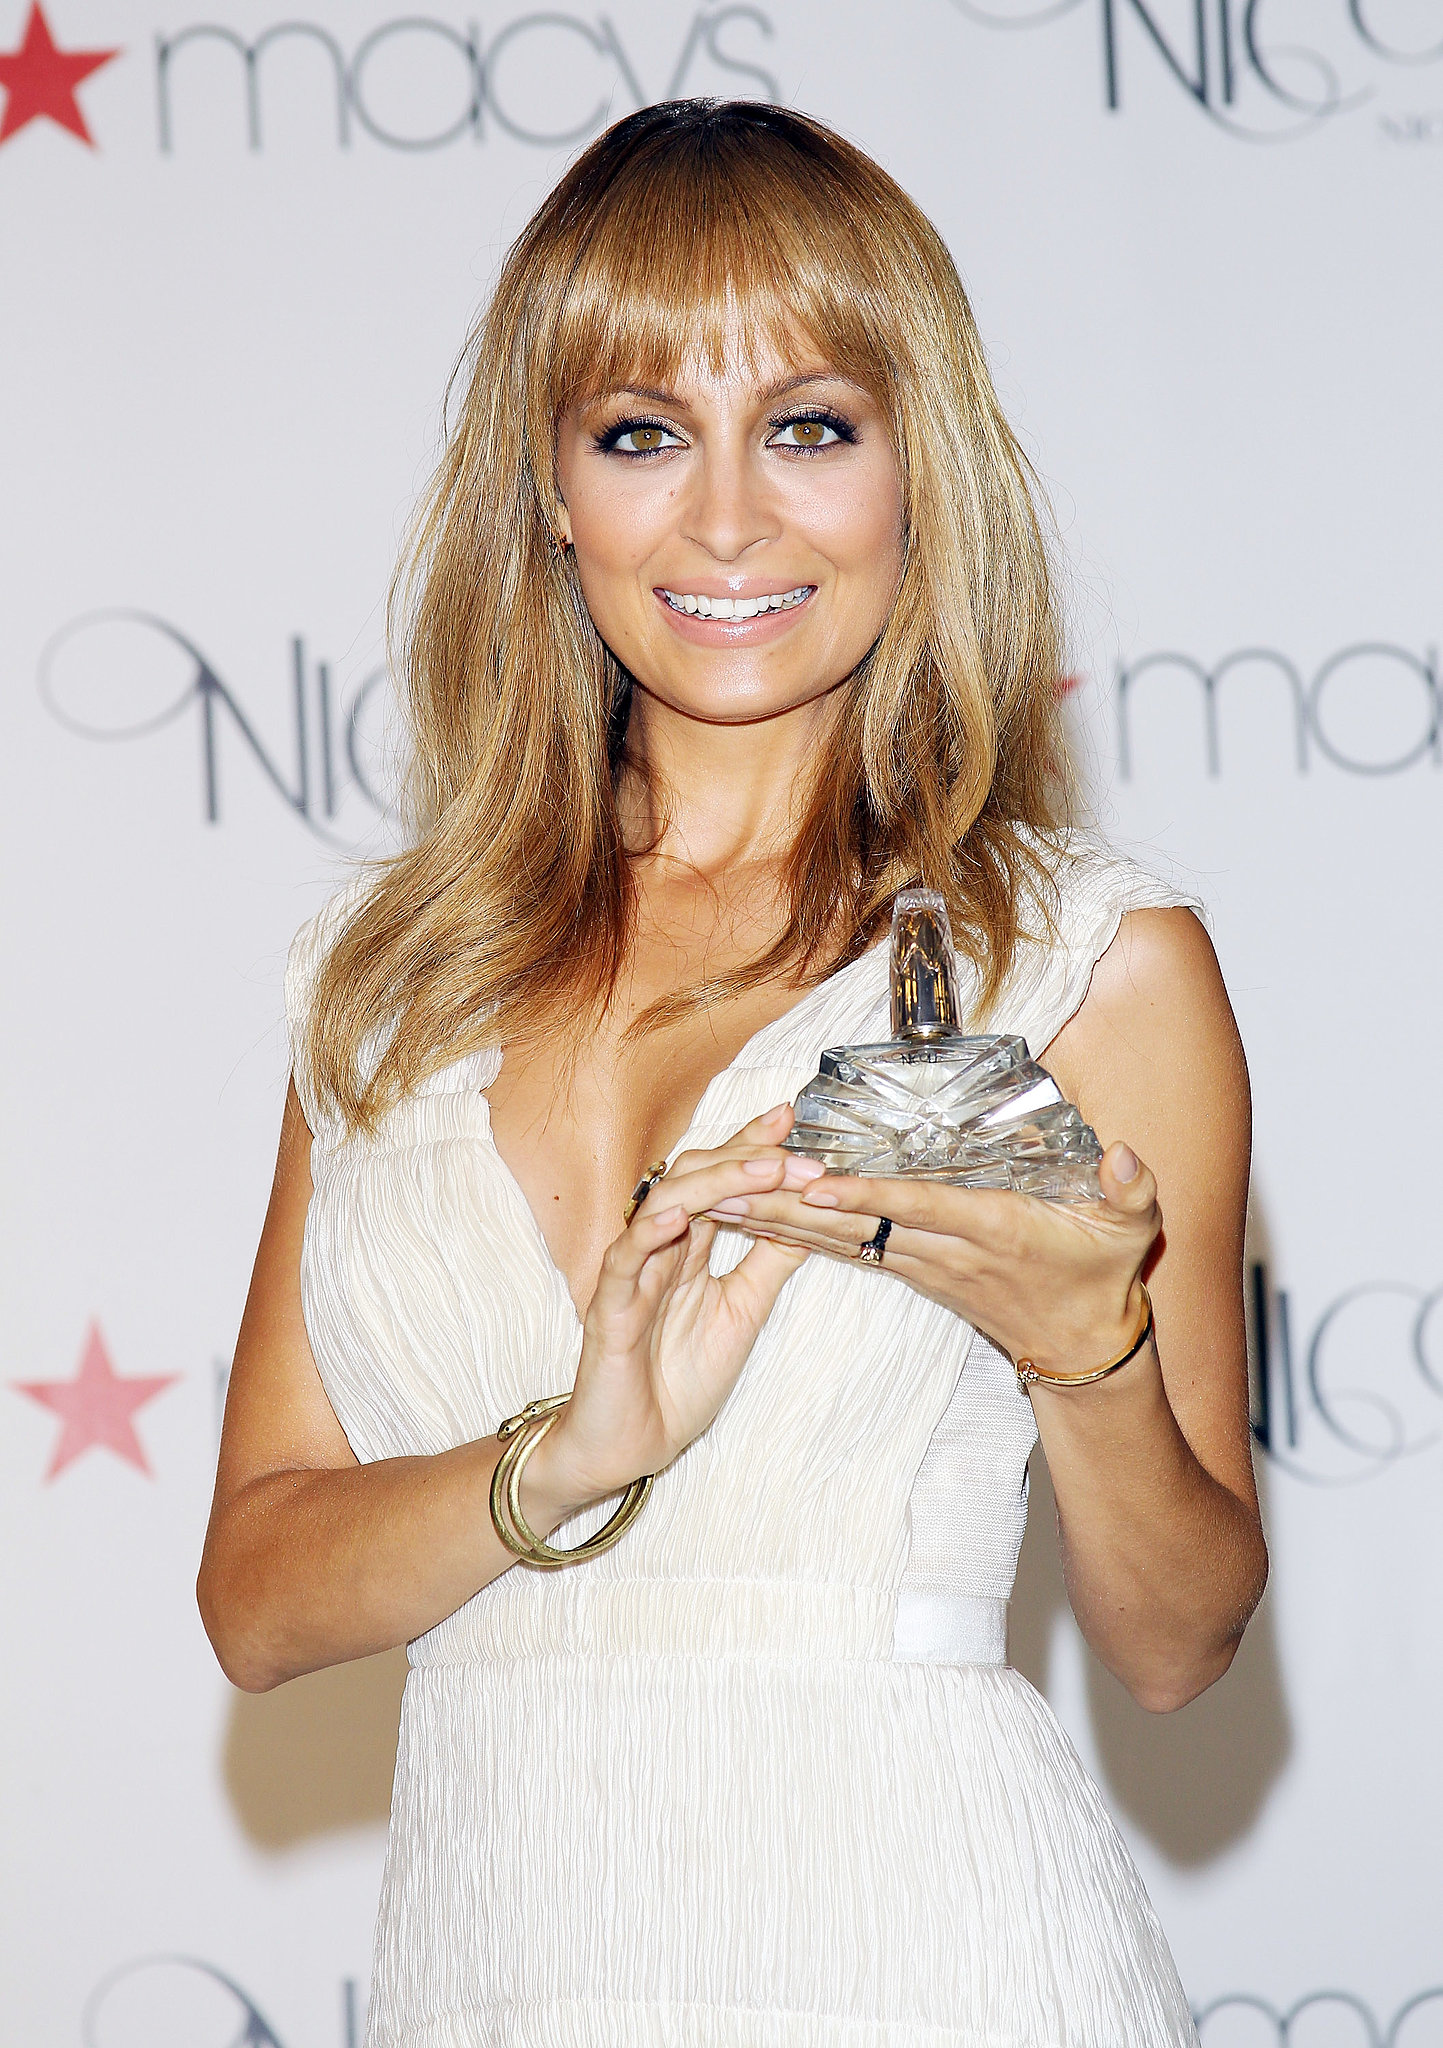 Nicole Richie attended a launch event for her fragrance, Nicole, at Macy's in LA in August 2012.